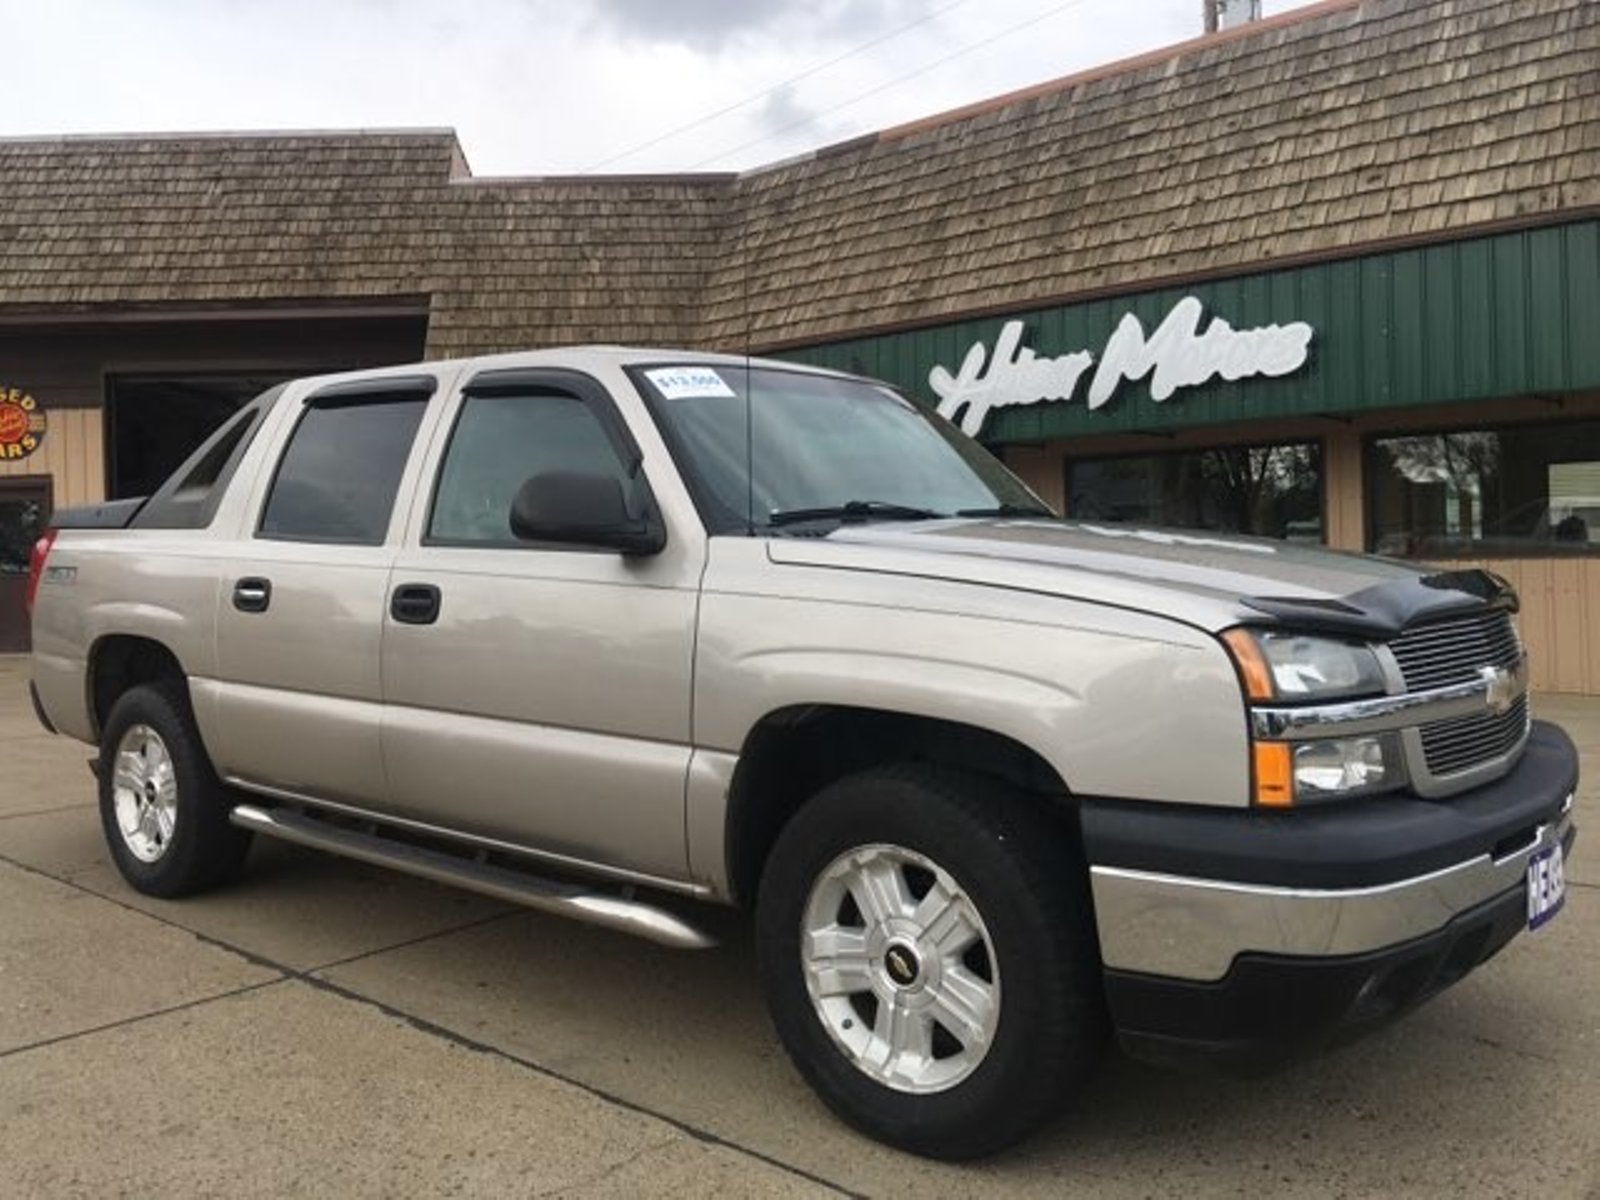 2006 chevrolet avalanche z71 city nd heiser motors 2006 chevrolet avalanche z71 city nd heiser motors in dickinson sciox Image collections